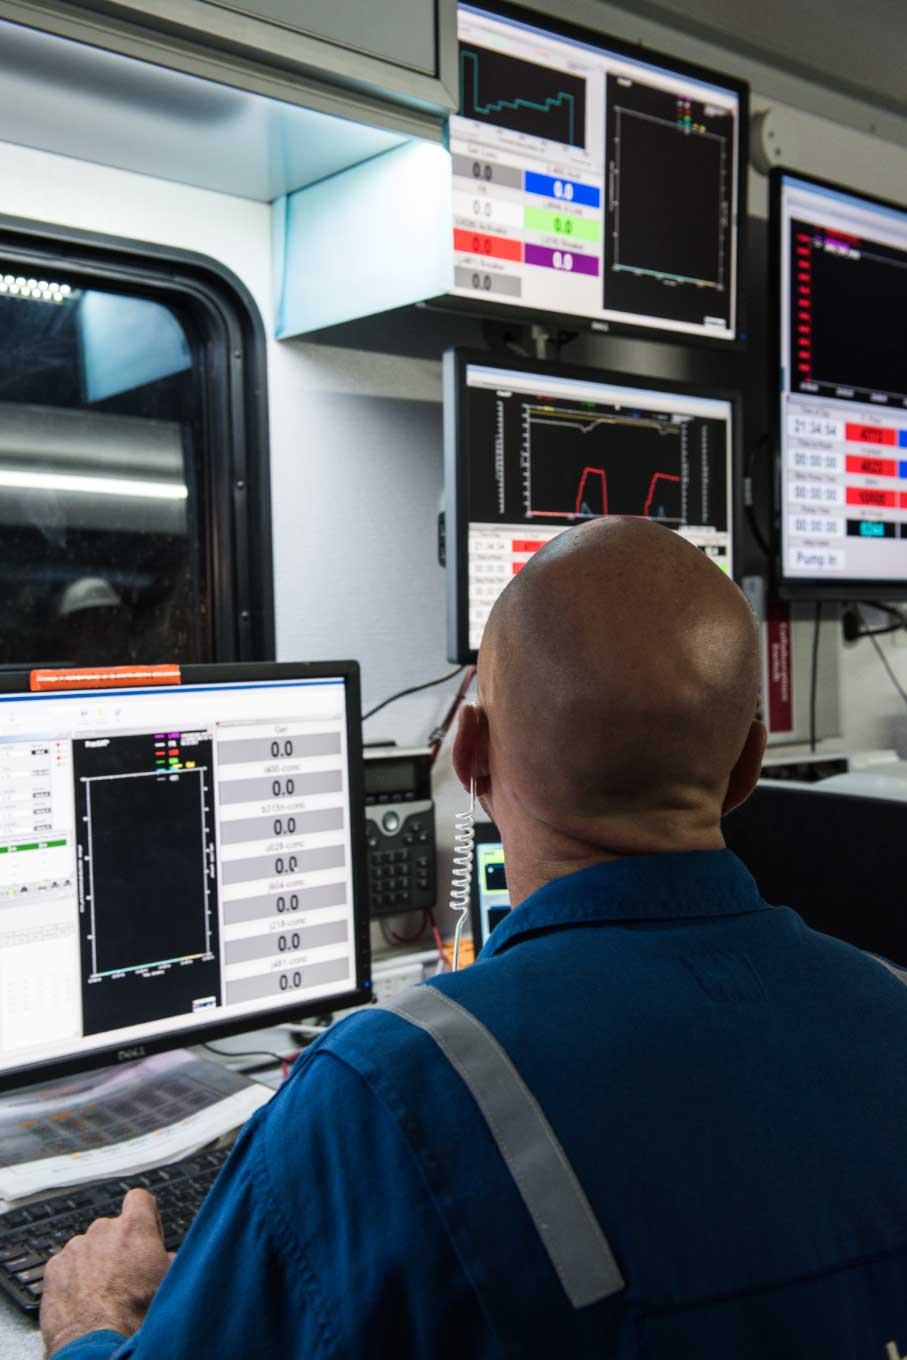 Schlumberger worker looking at monitors displaying data.